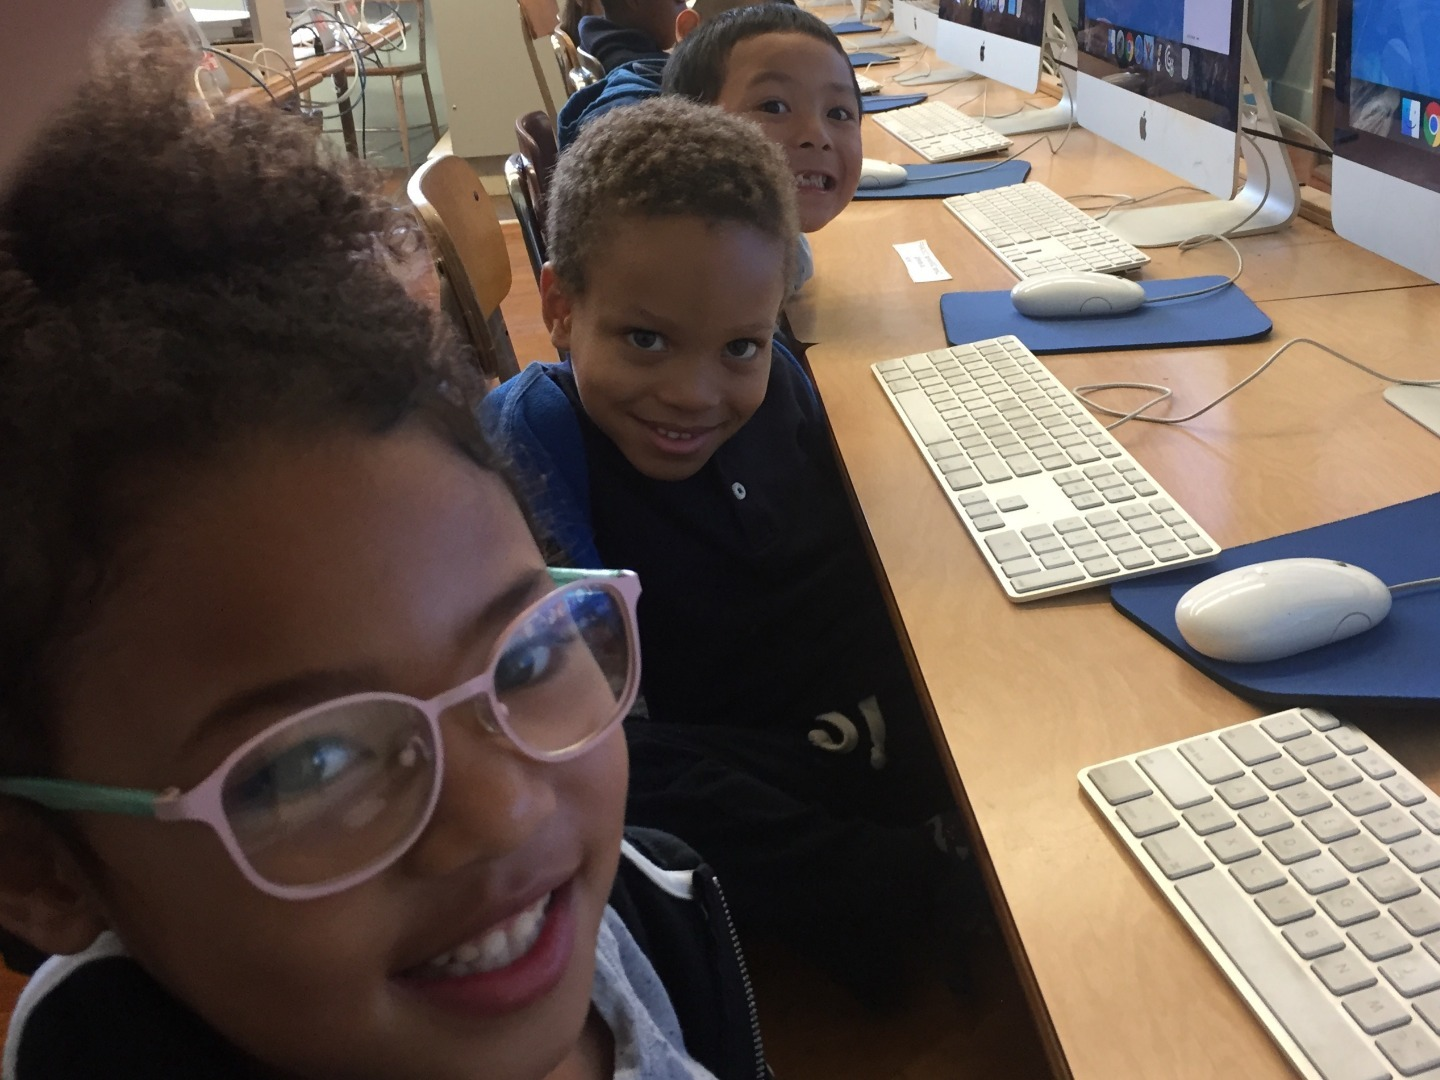 Kindergarteners on computers